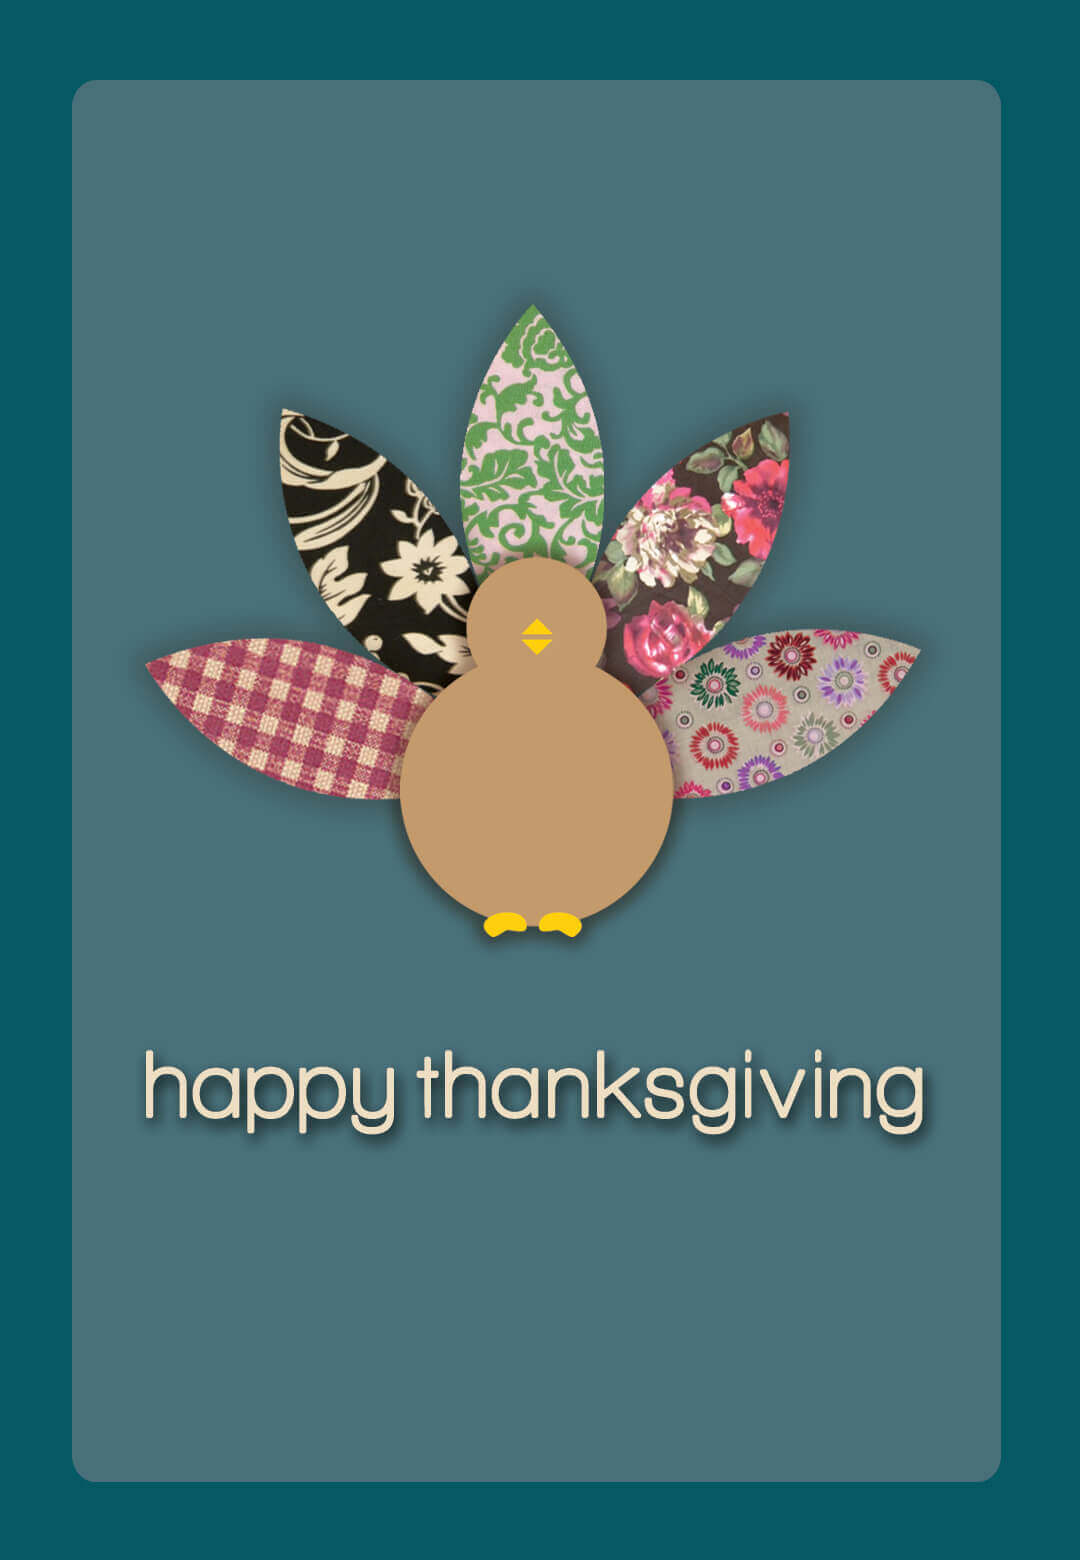 Thanksgiving 2019 Greeting Cards